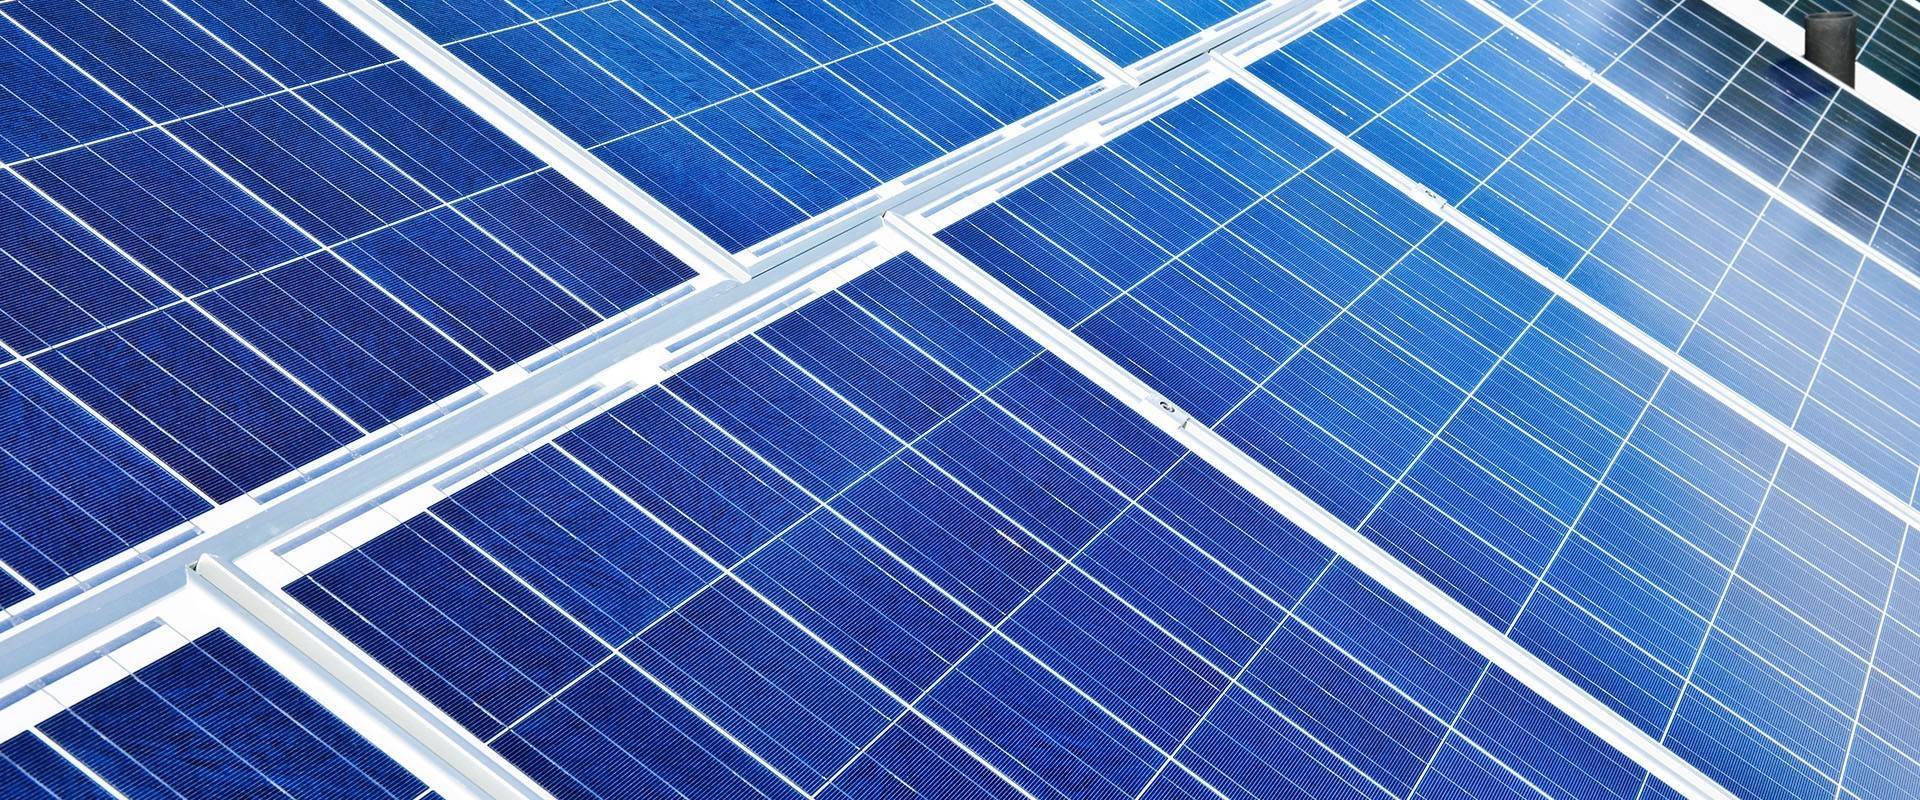 Solar Panel Do's and Don'ts